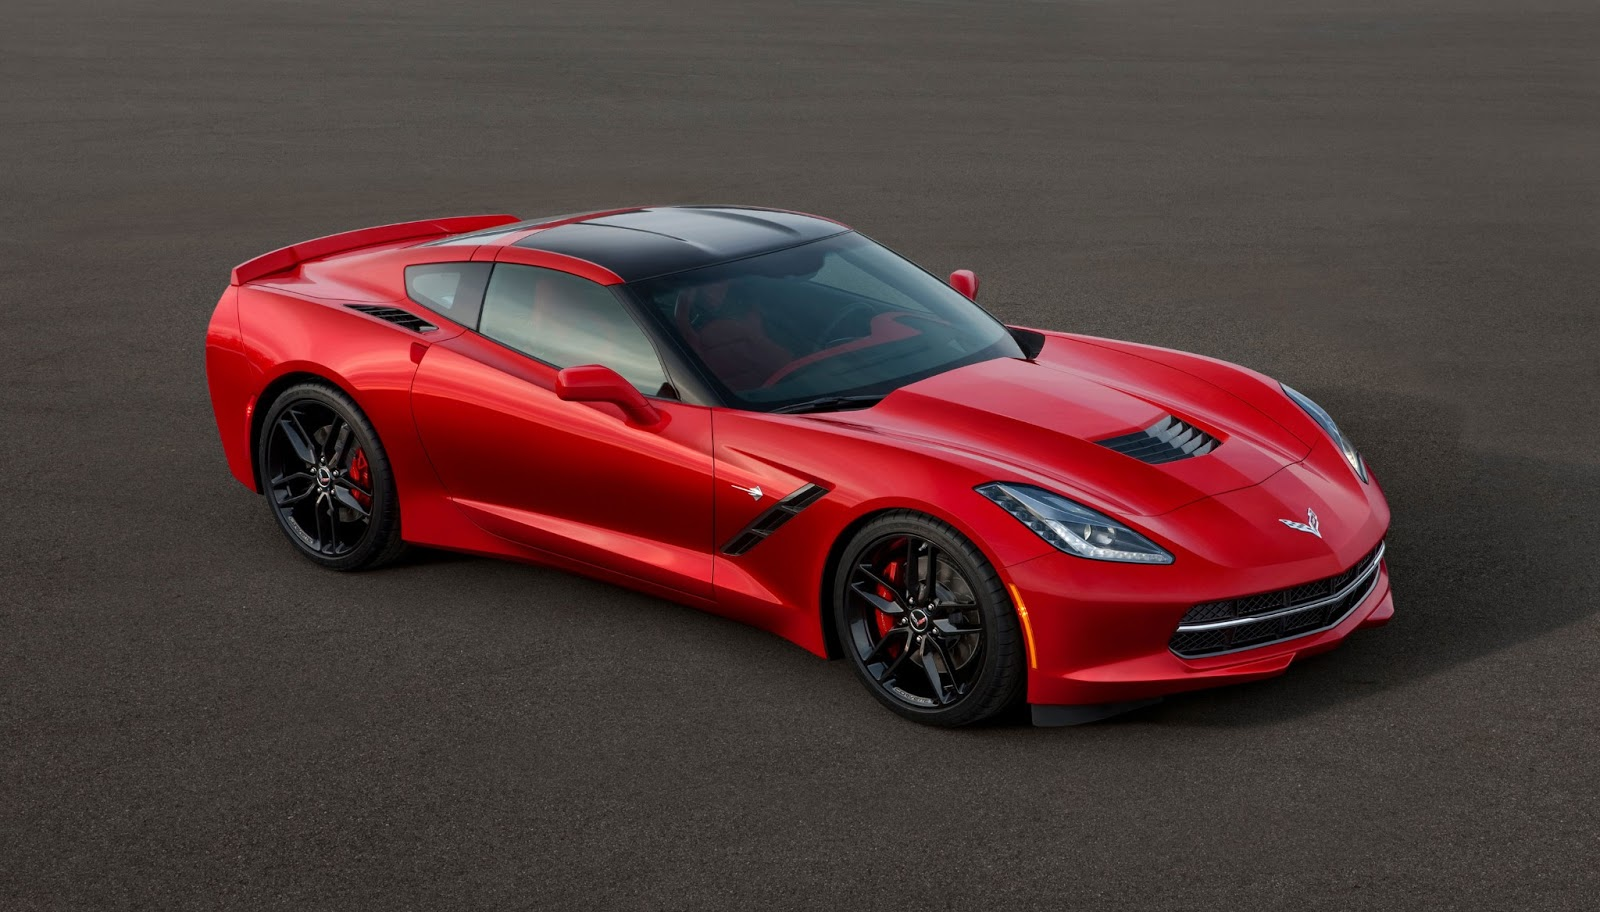 cars model 2013 2014 2015 c7 corvette turbo with 1 000 horsepower promised from hennessey. Black Bedroom Furniture Sets. Home Design Ideas